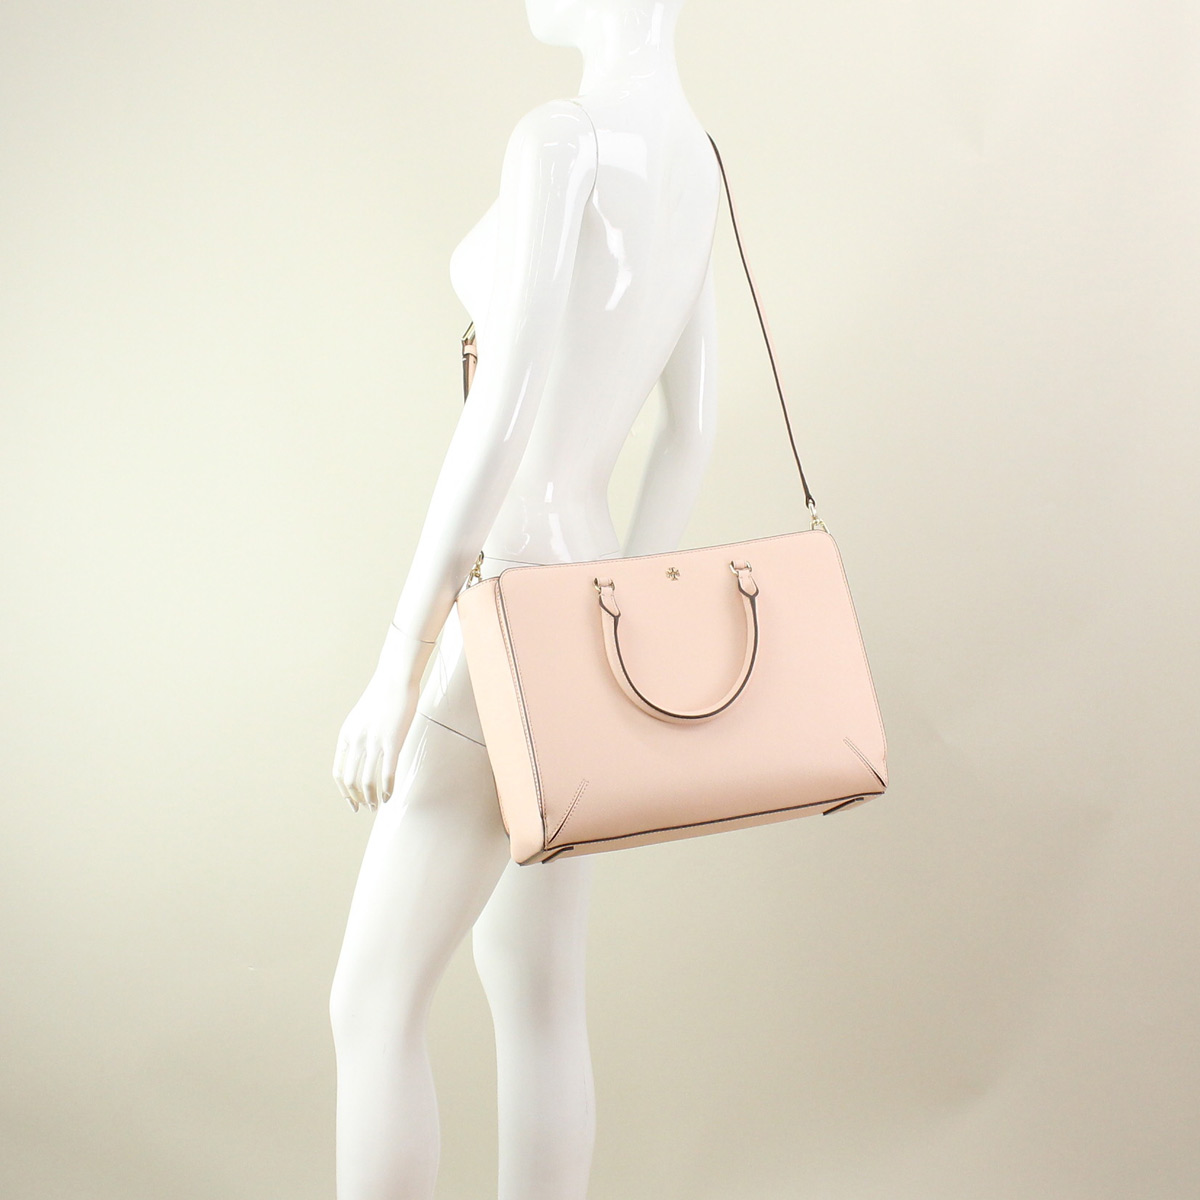 Tory Burch (TORY BURCH) tote bag 11169761-228 PALE APRICOT pink( taxfree/send by EMS/authentic/A brand new item )